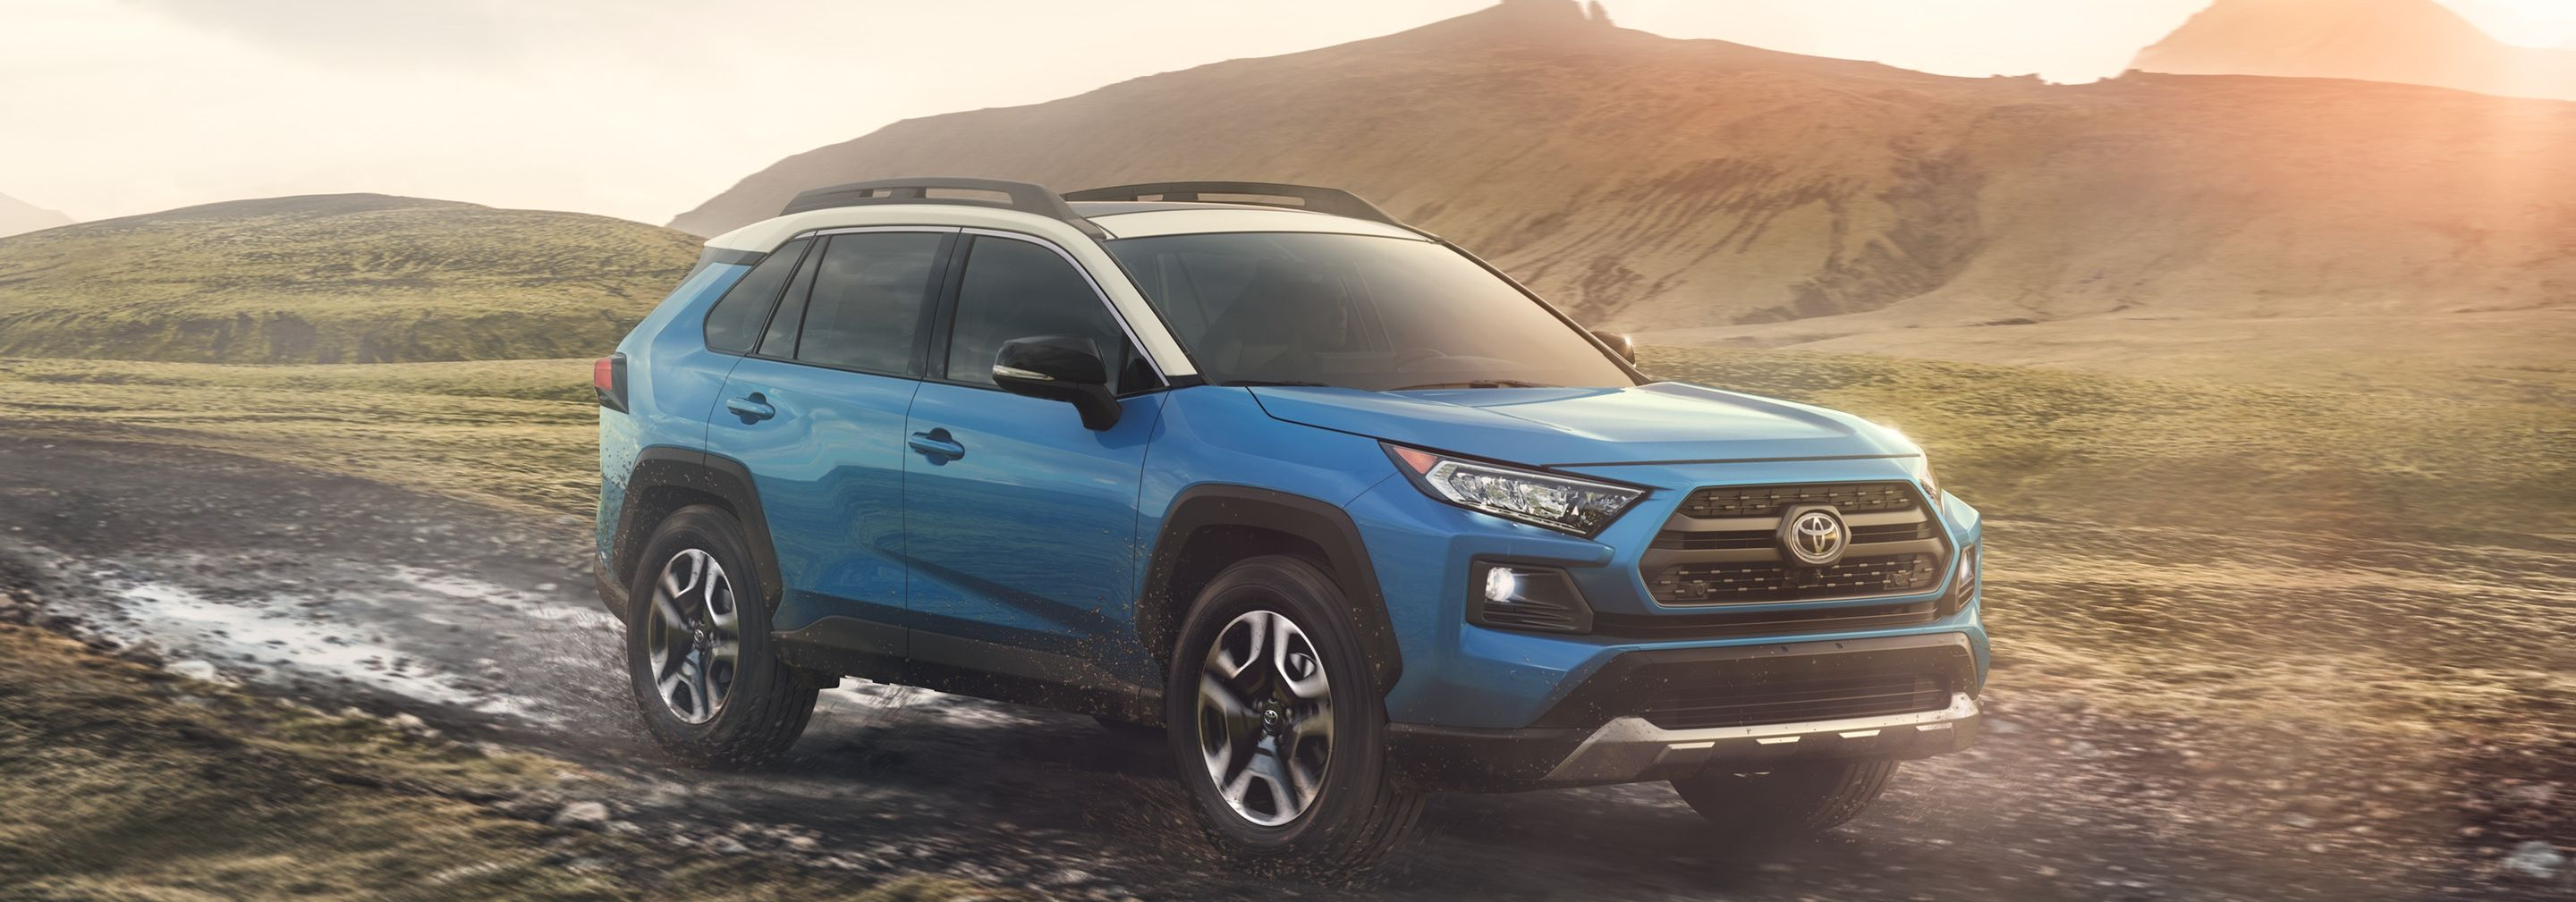 2019 Toyota RAV4 Leasing near Glen Mills, PA